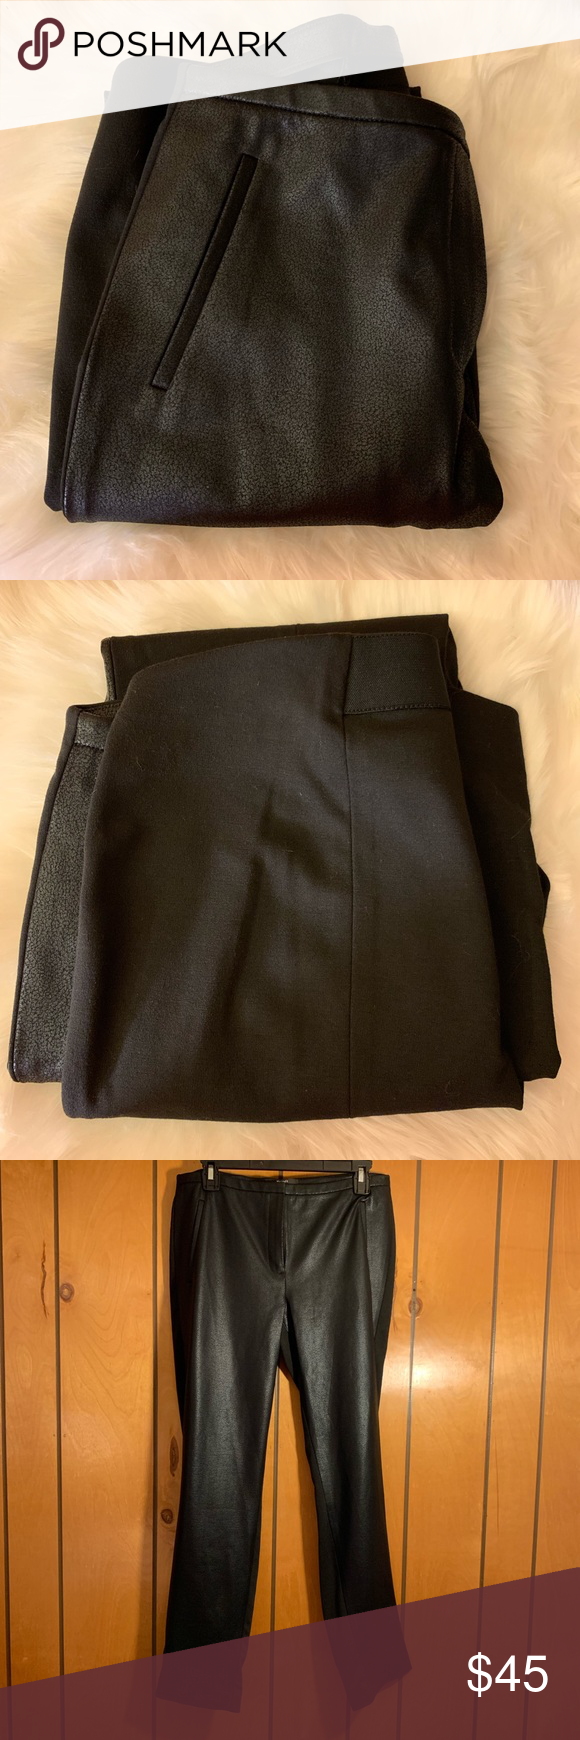 Tahari faux leather pants Excellent preowned condition in